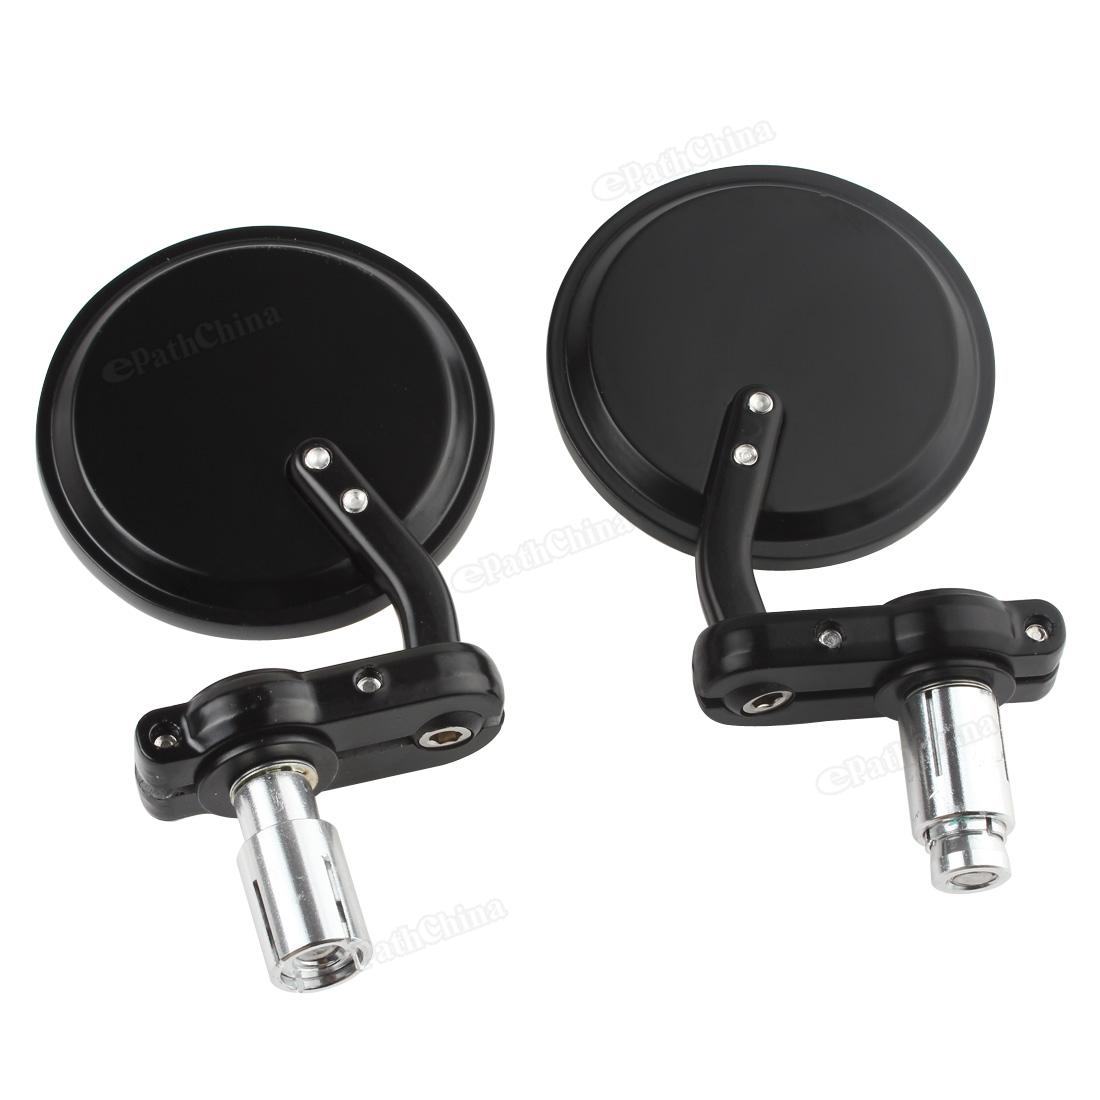 2Pcs Motorcycle Mirror Round 7 8 quot Aluminum Black Handle Bar End Foldable Rearview Side Mirrors Motor Accessories Car Styling in Side Mirrors amp Accessories from Automobiles amp Motorcycles